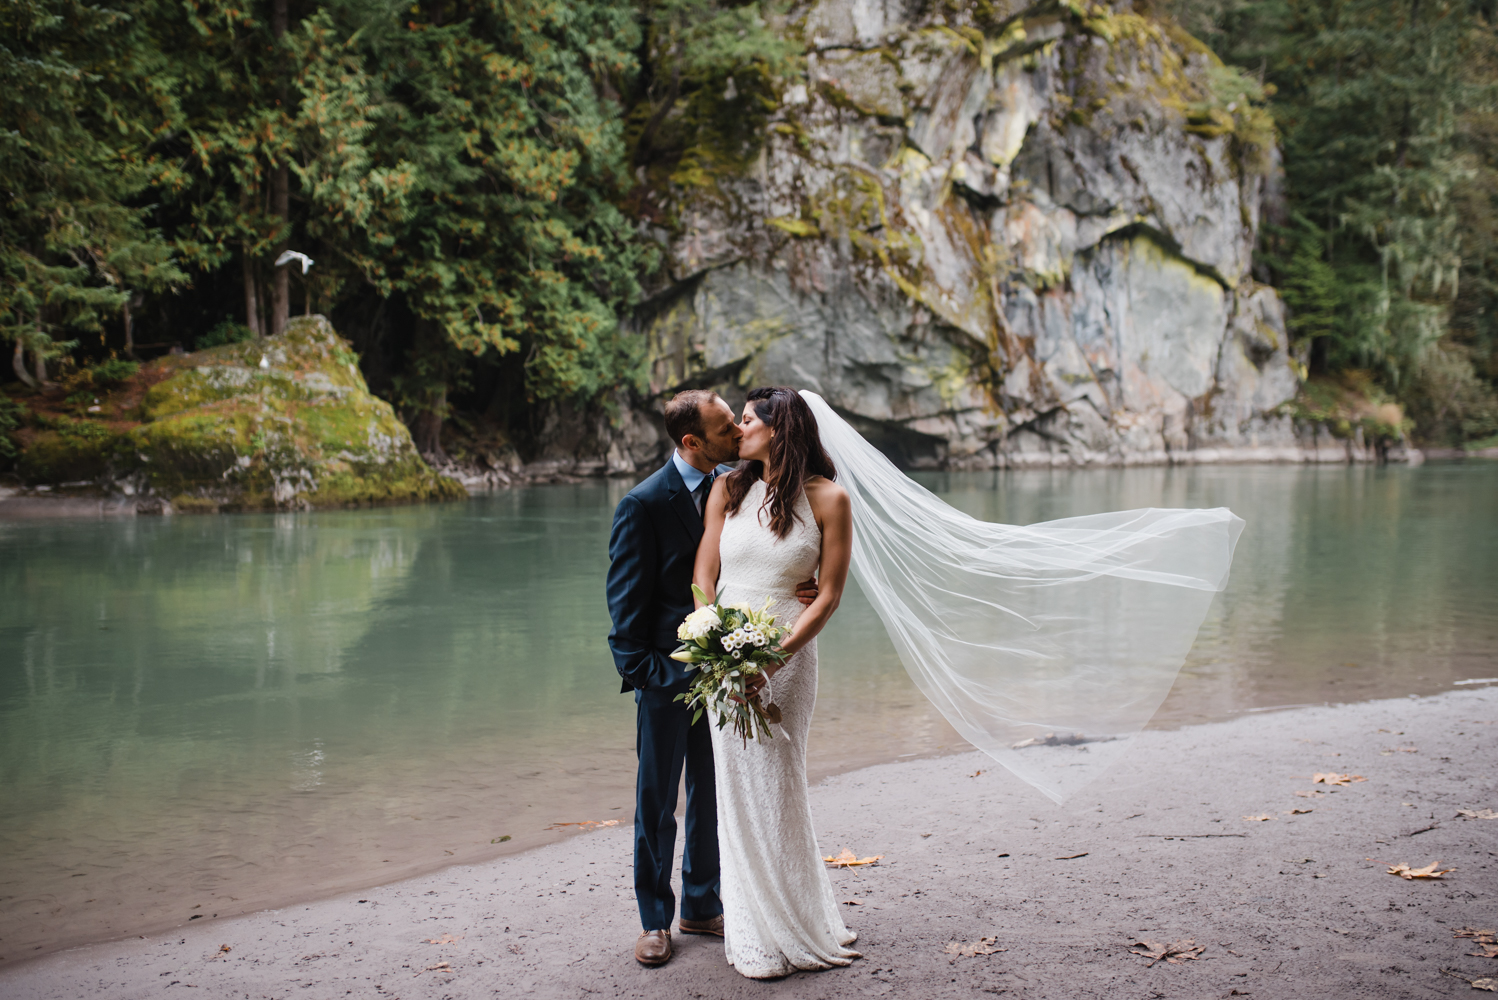 Squamish Wedding Photographer105.jpg